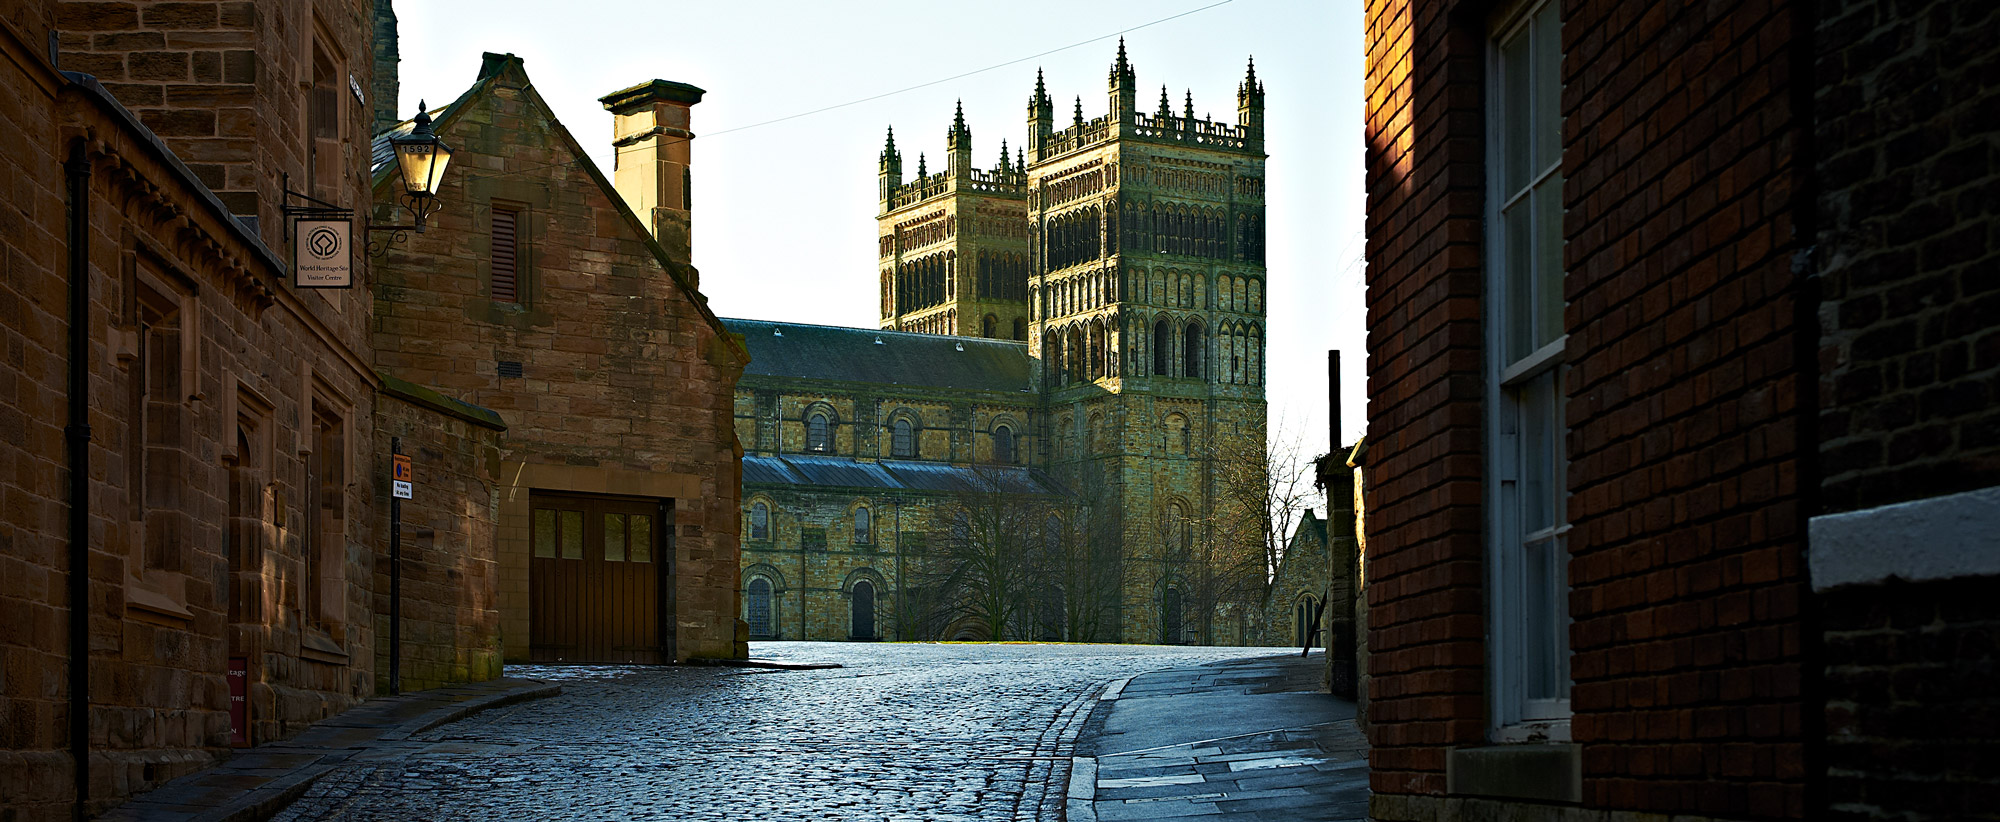 Photograph looking up a narrow cobbled street towards Durham Cathedral